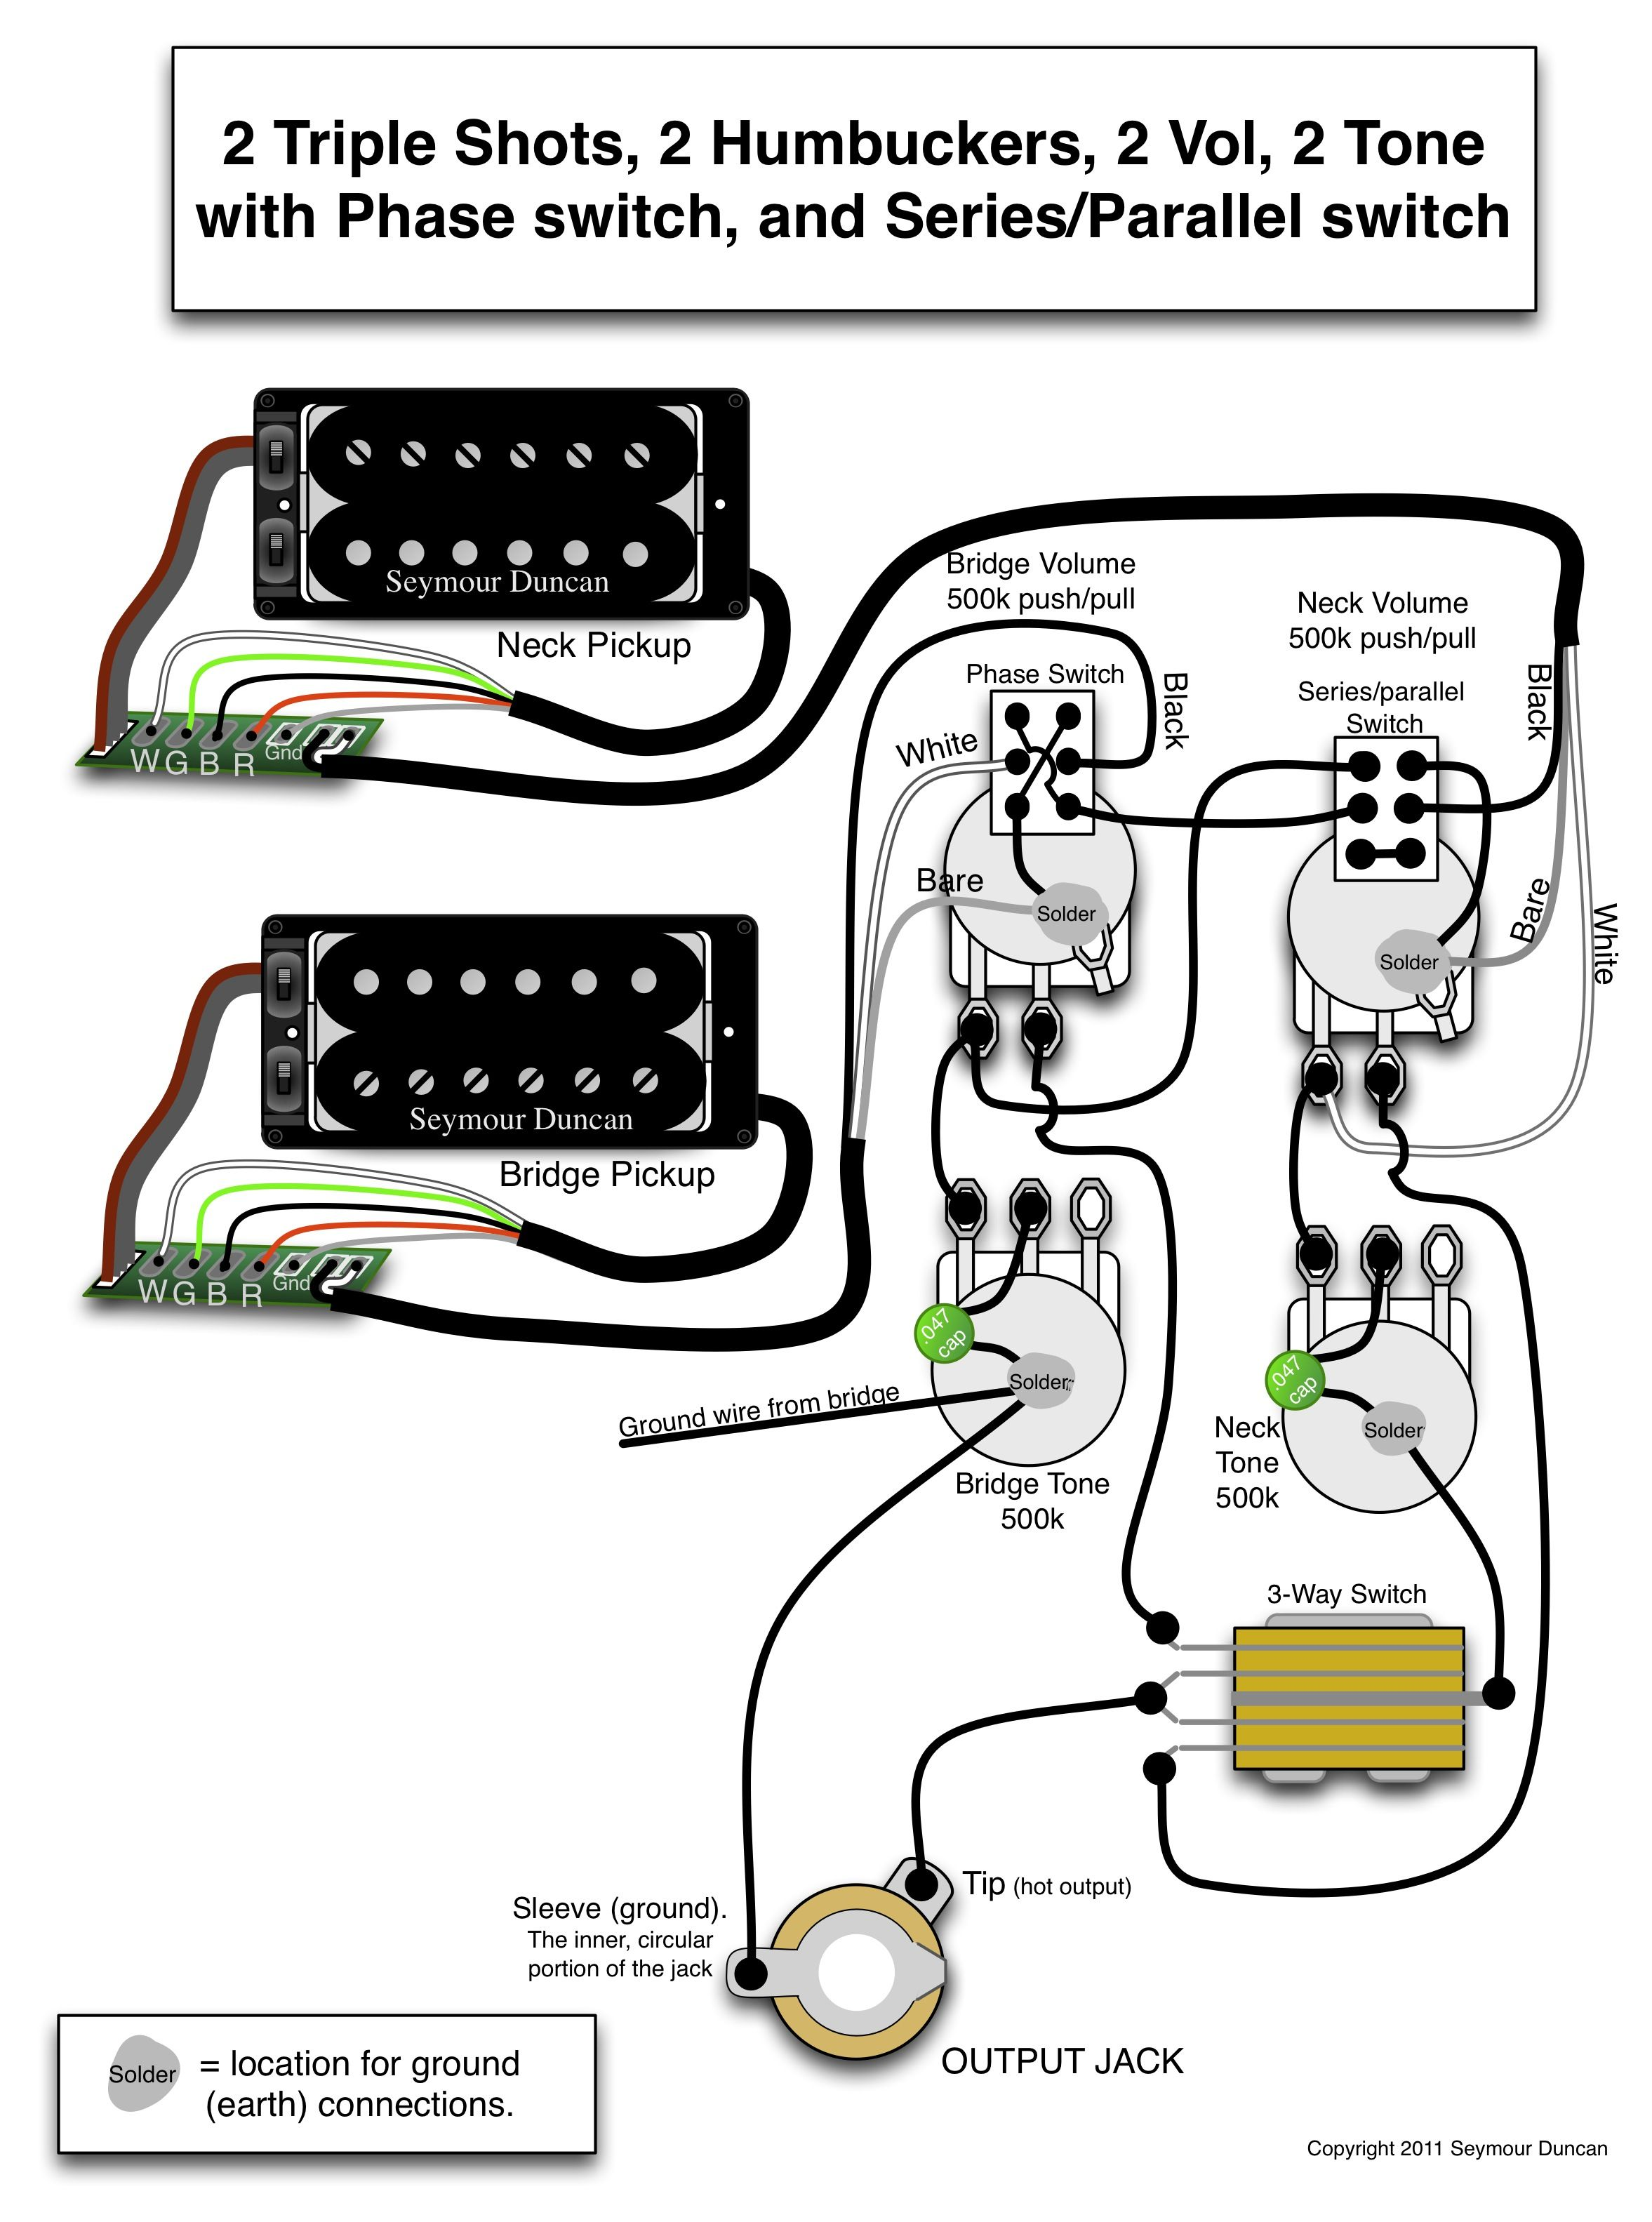 seymour duncan wiring diagram 2 triple shots 2 humbuckers 2 vol rh pinterest com